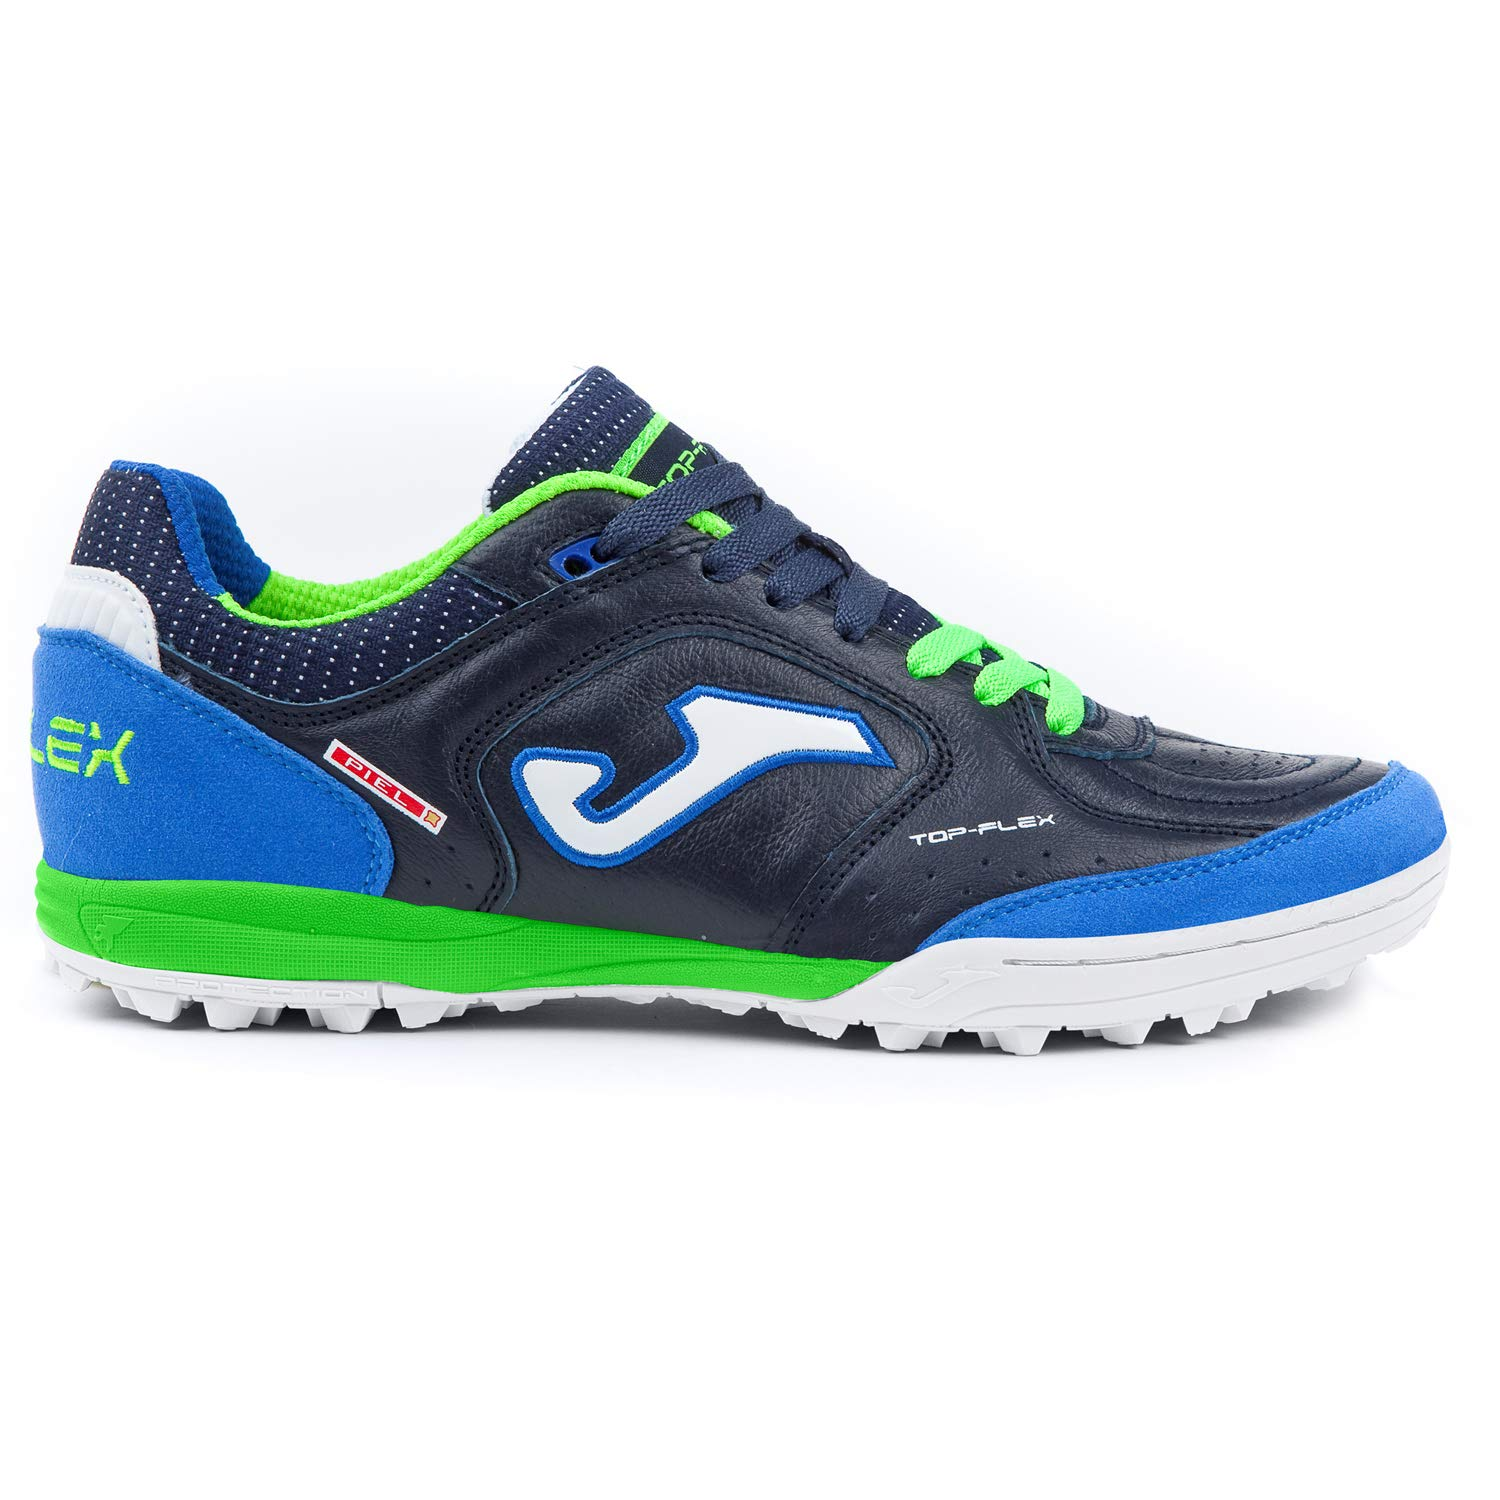 Joma Schuhe Soccer Top Flex Turf Tops_803 Navy Calcetto Scarpa